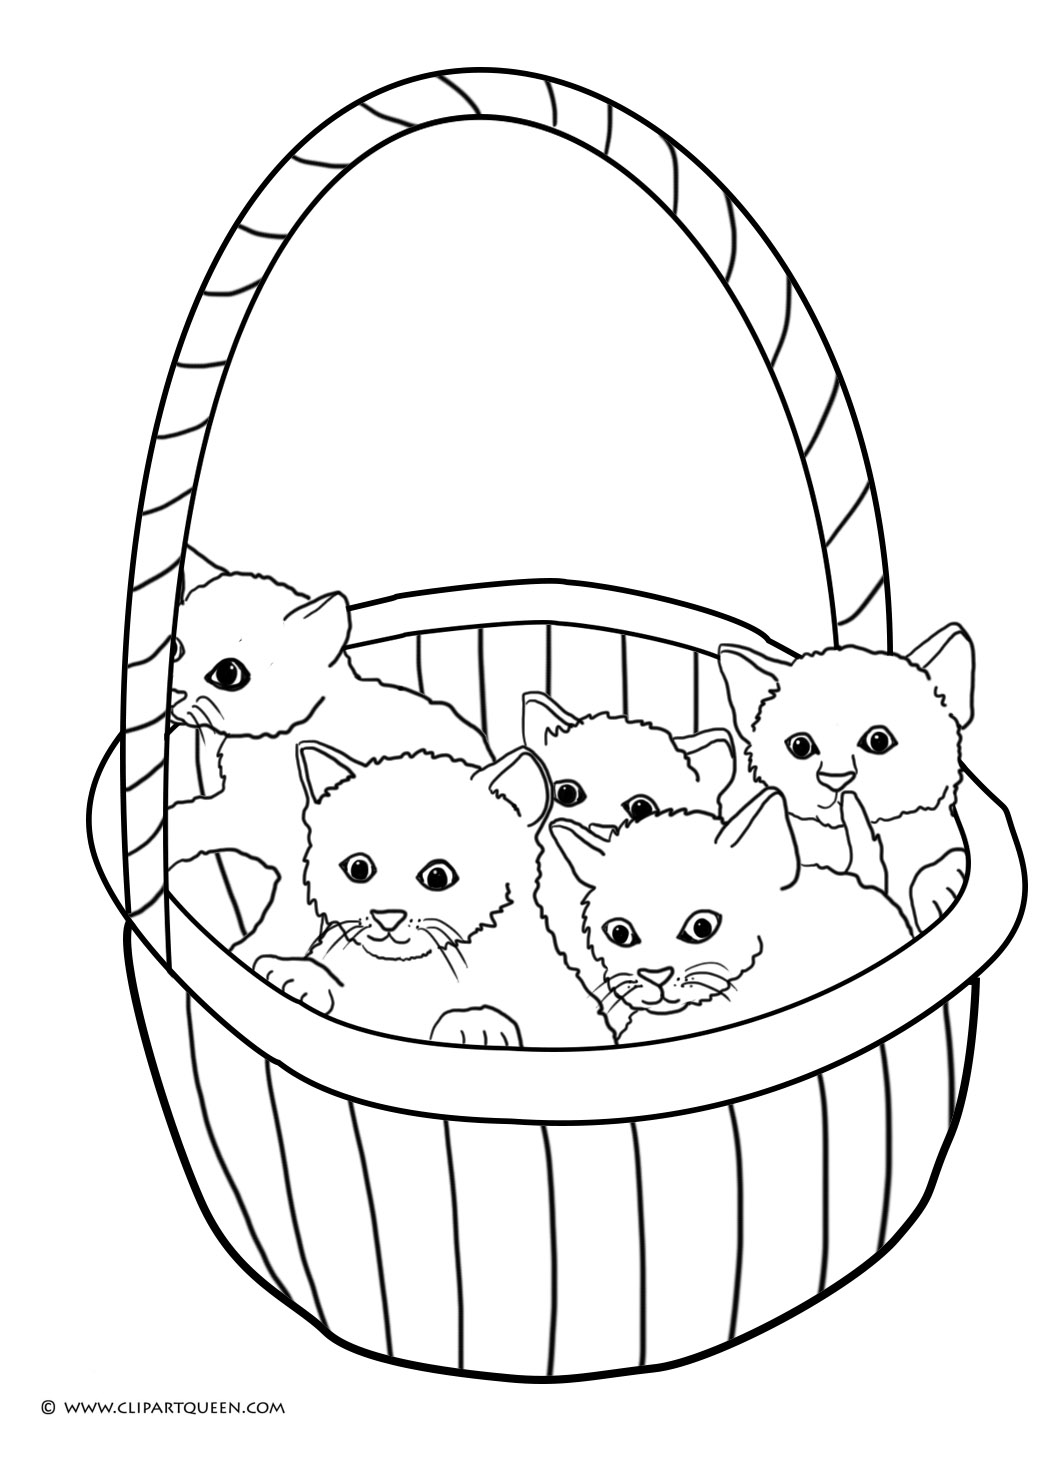 cute kittens coloring pages cute kitten coloring page favecraftscom kittens pages cute coloring